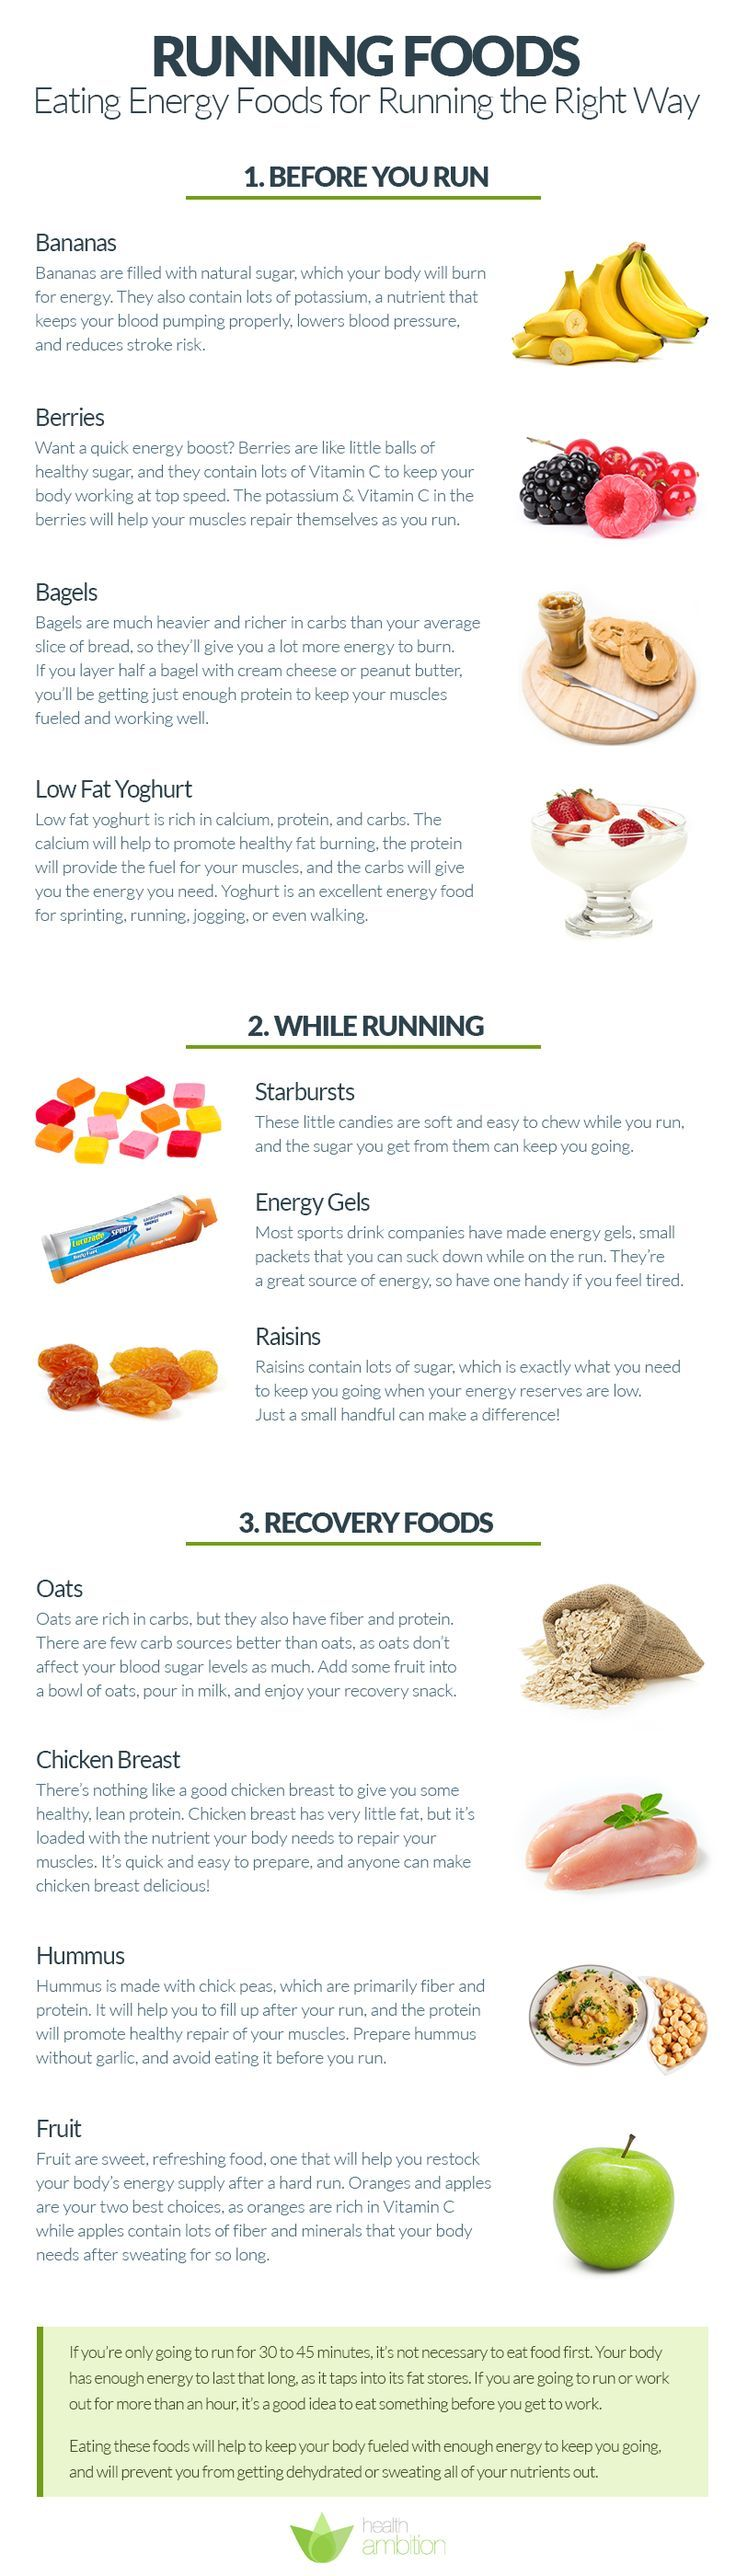 Running Foods – Eating Energy Foods for Running the Right Way - http://www.healthambition.com/running-foods/